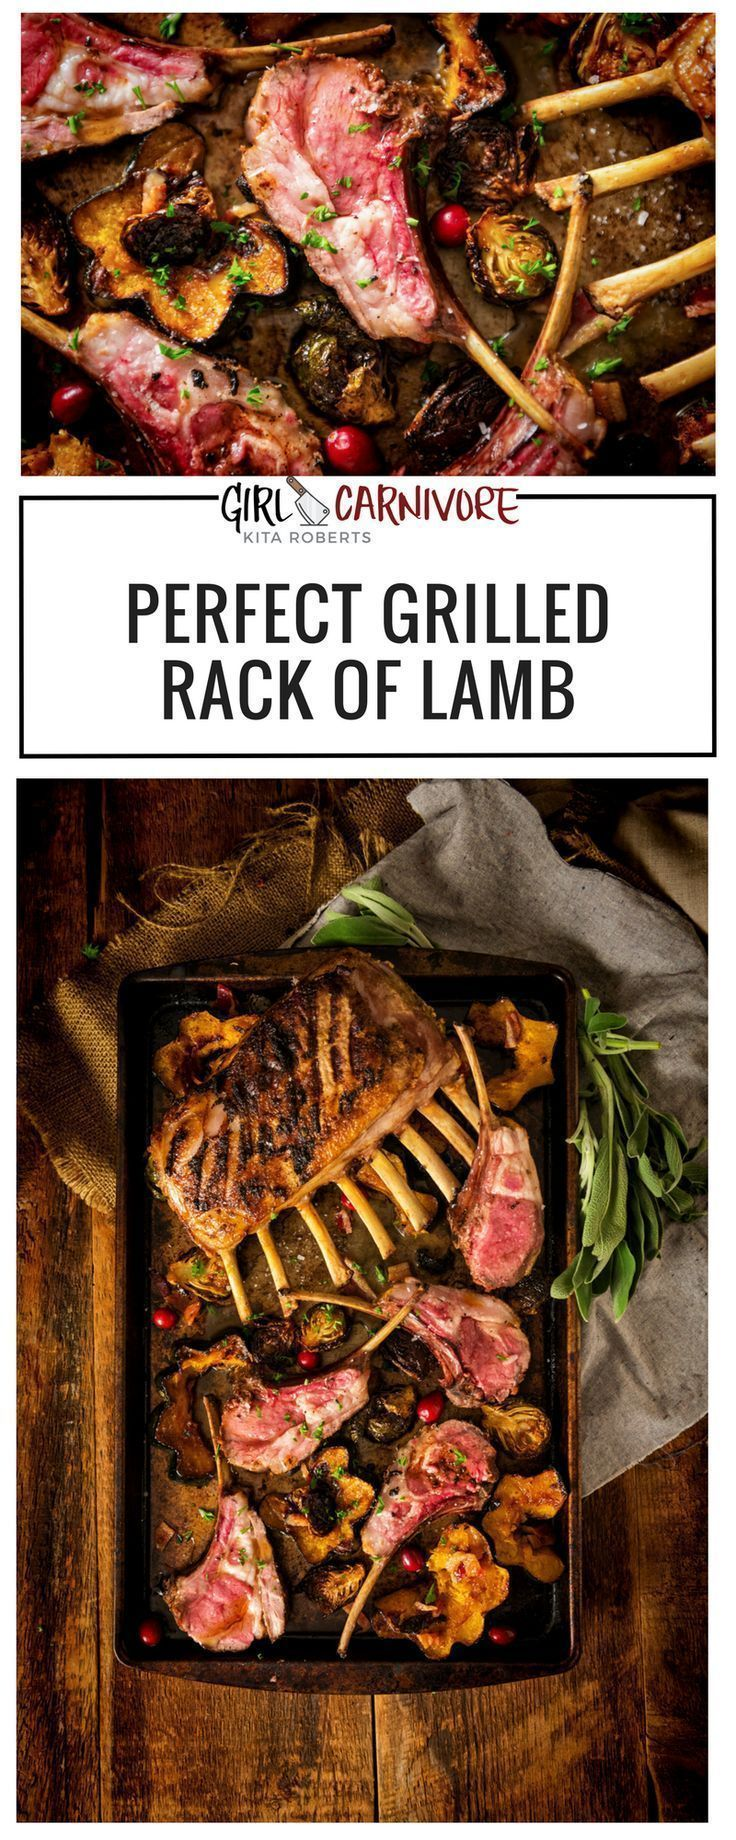 """Perfectly Grilled Rack of Lamb - W How To Clean Your BBQ Smoker """"How To"""" Guide to BBQ & Smoker Projects & Recipes 